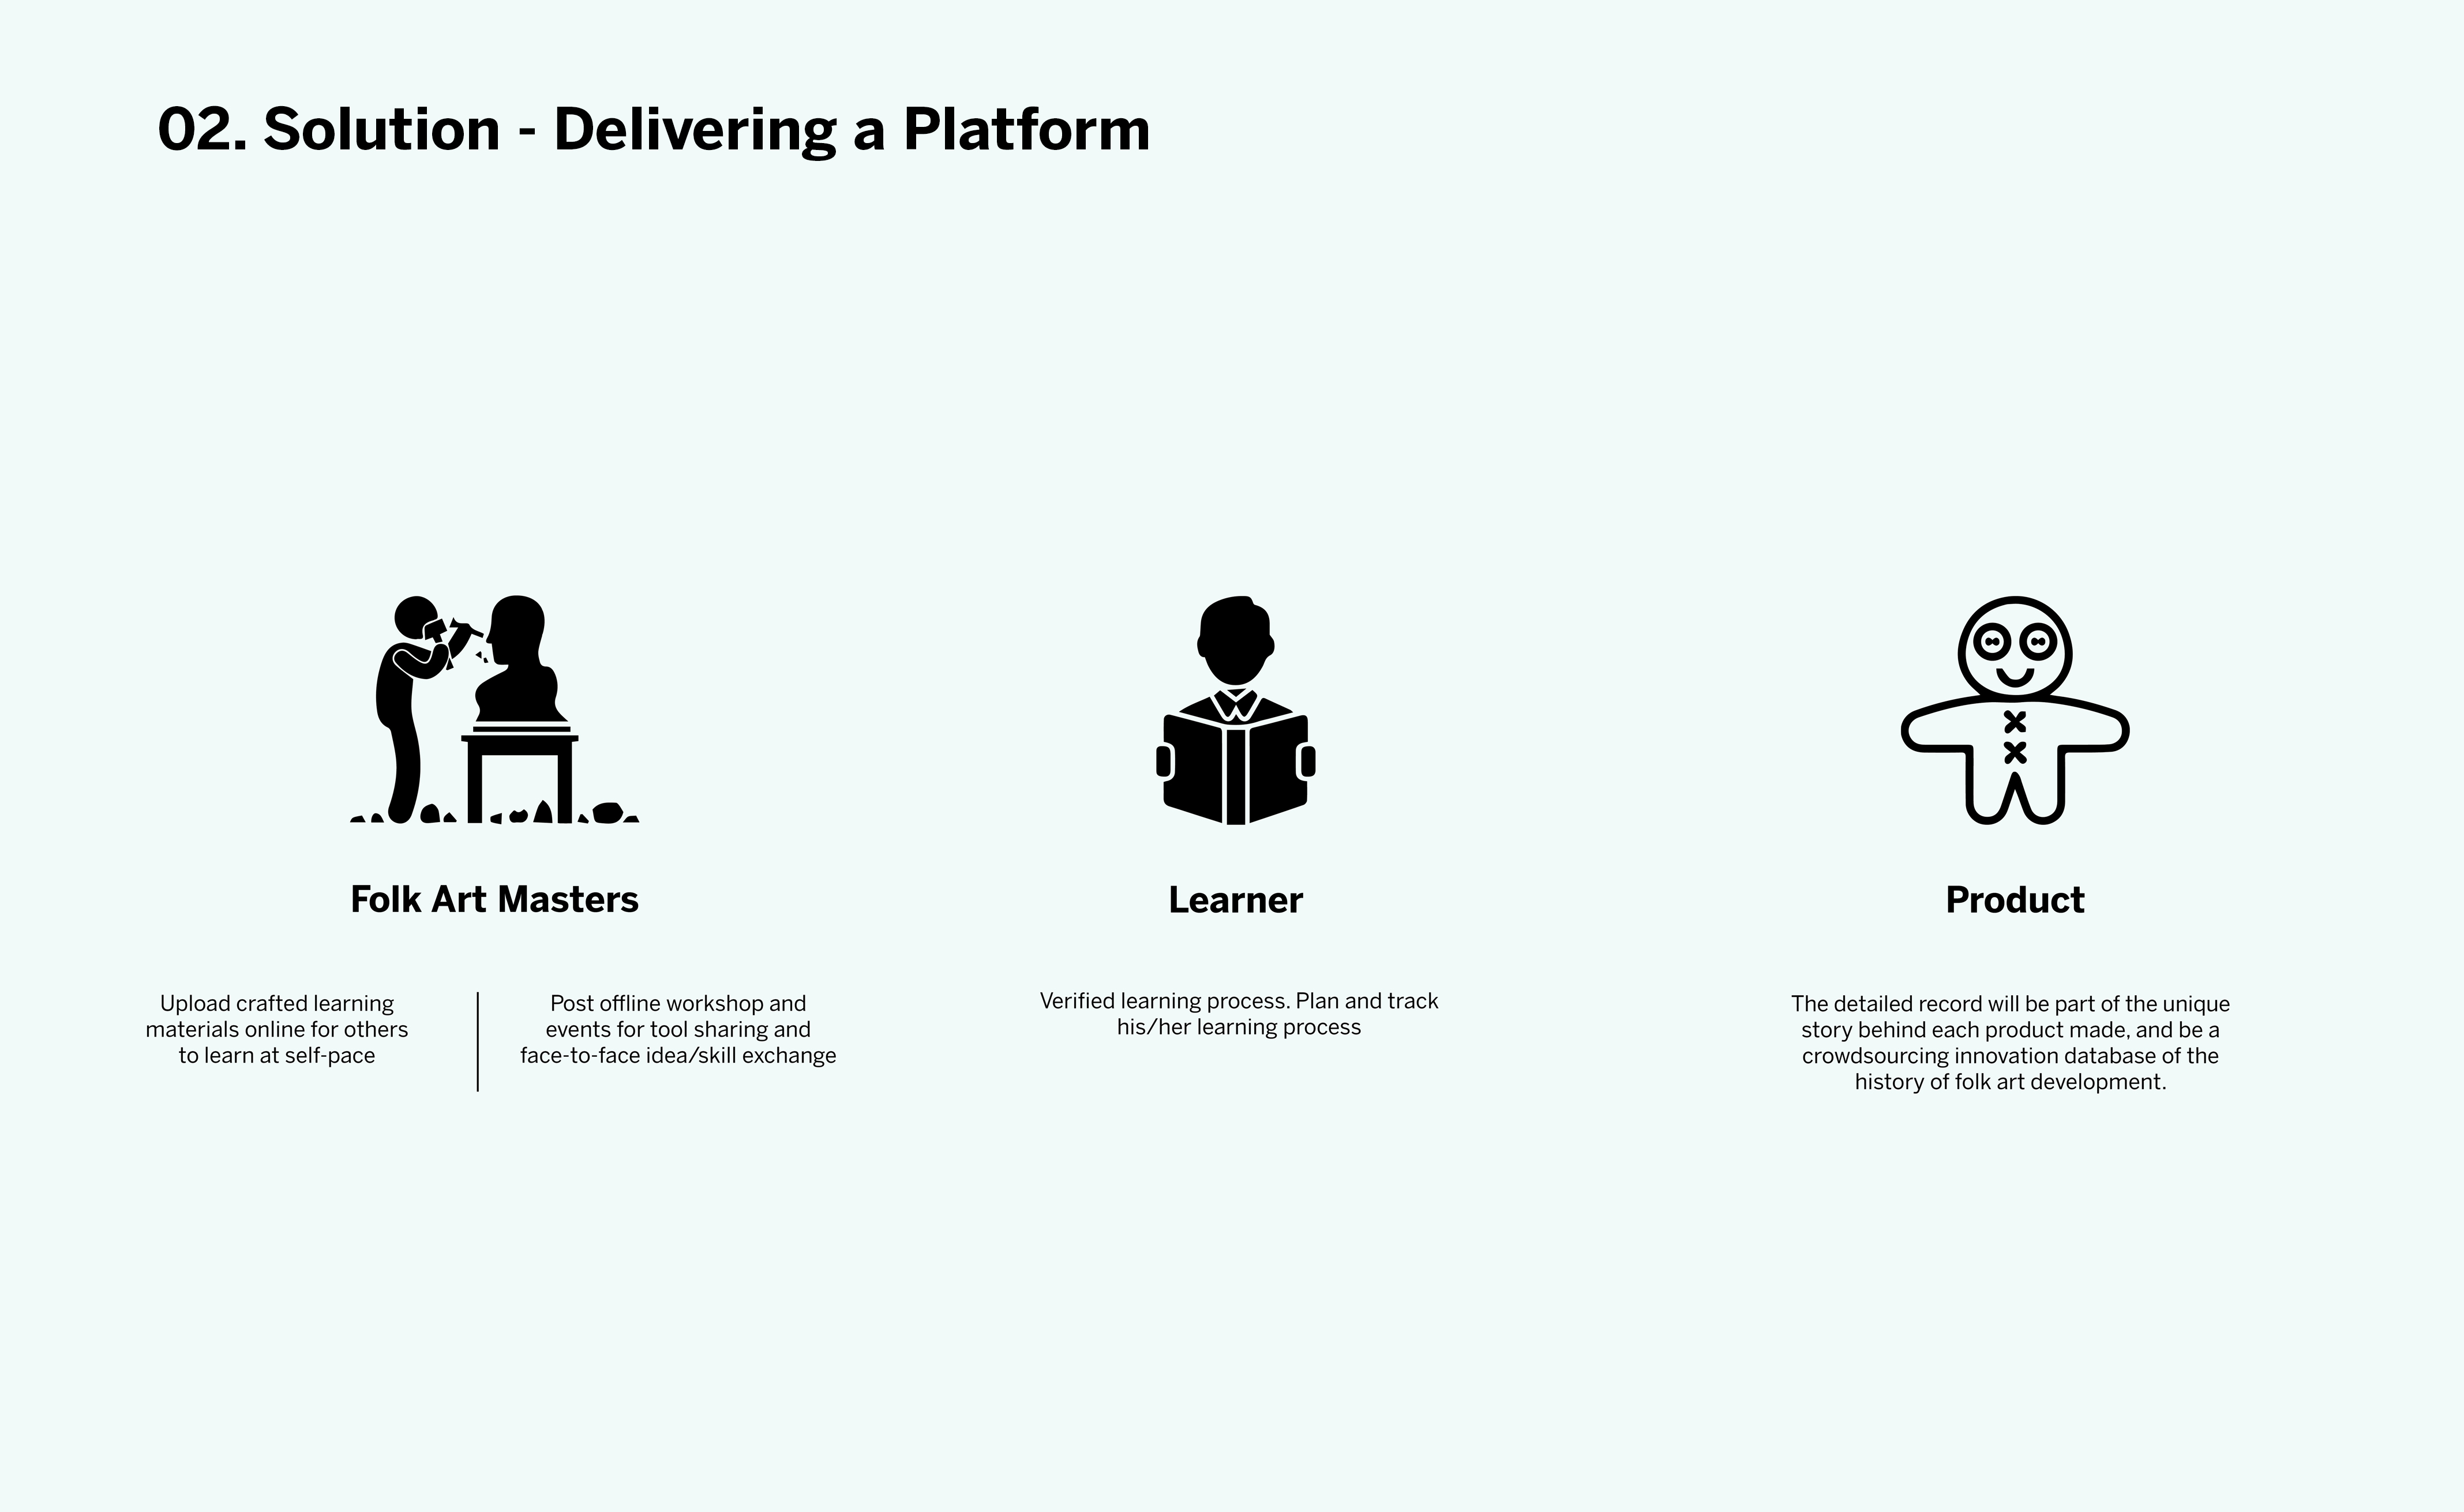 3. In this way, HiCraft proposes to create an educational and trading platform to bring craft masters, inheritors and customers together by blockchain technology, and create a learning, making, selling and buying platform both online and offline